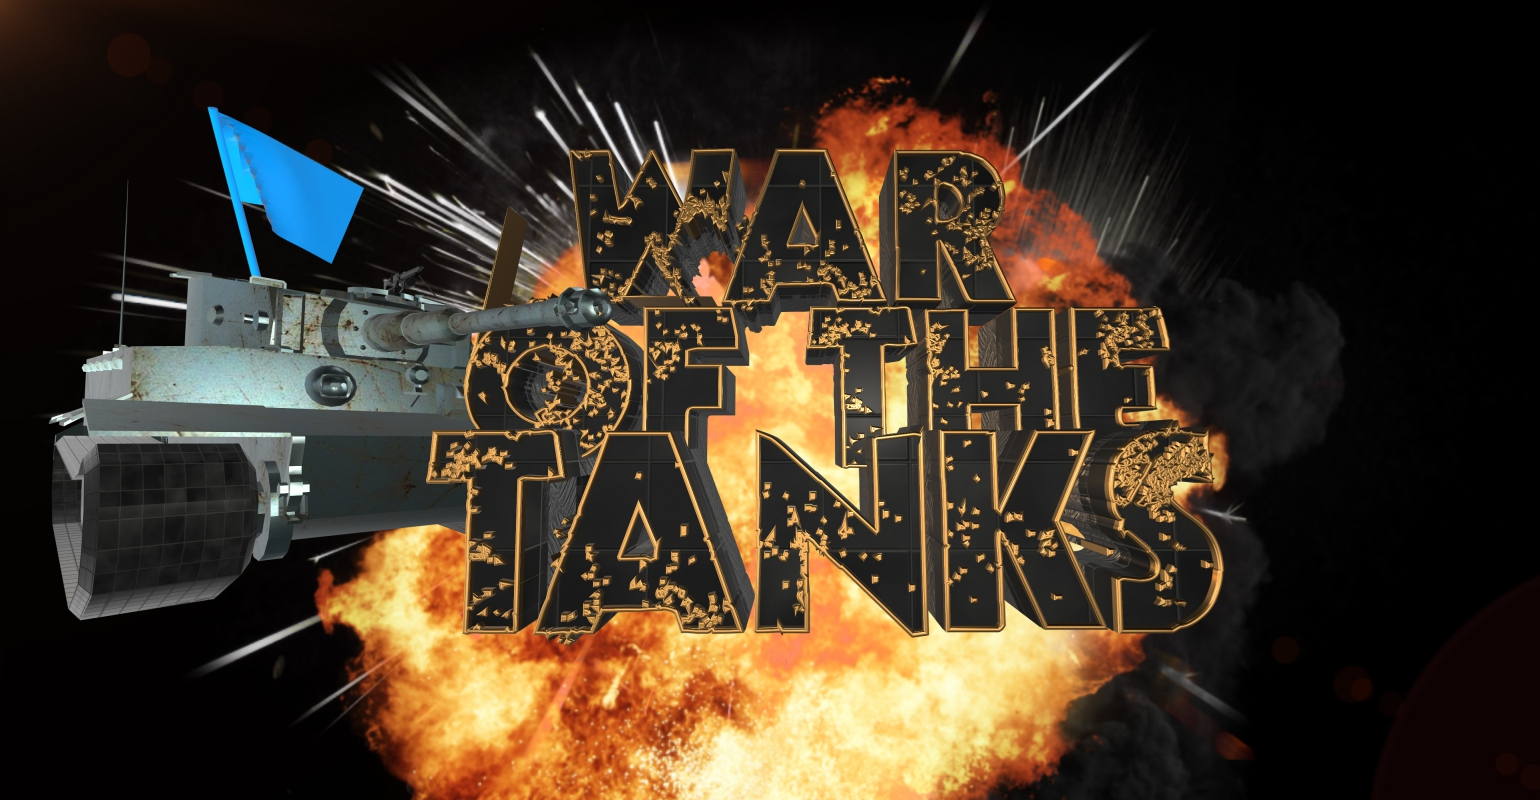 War of the tanks - Logboek 05